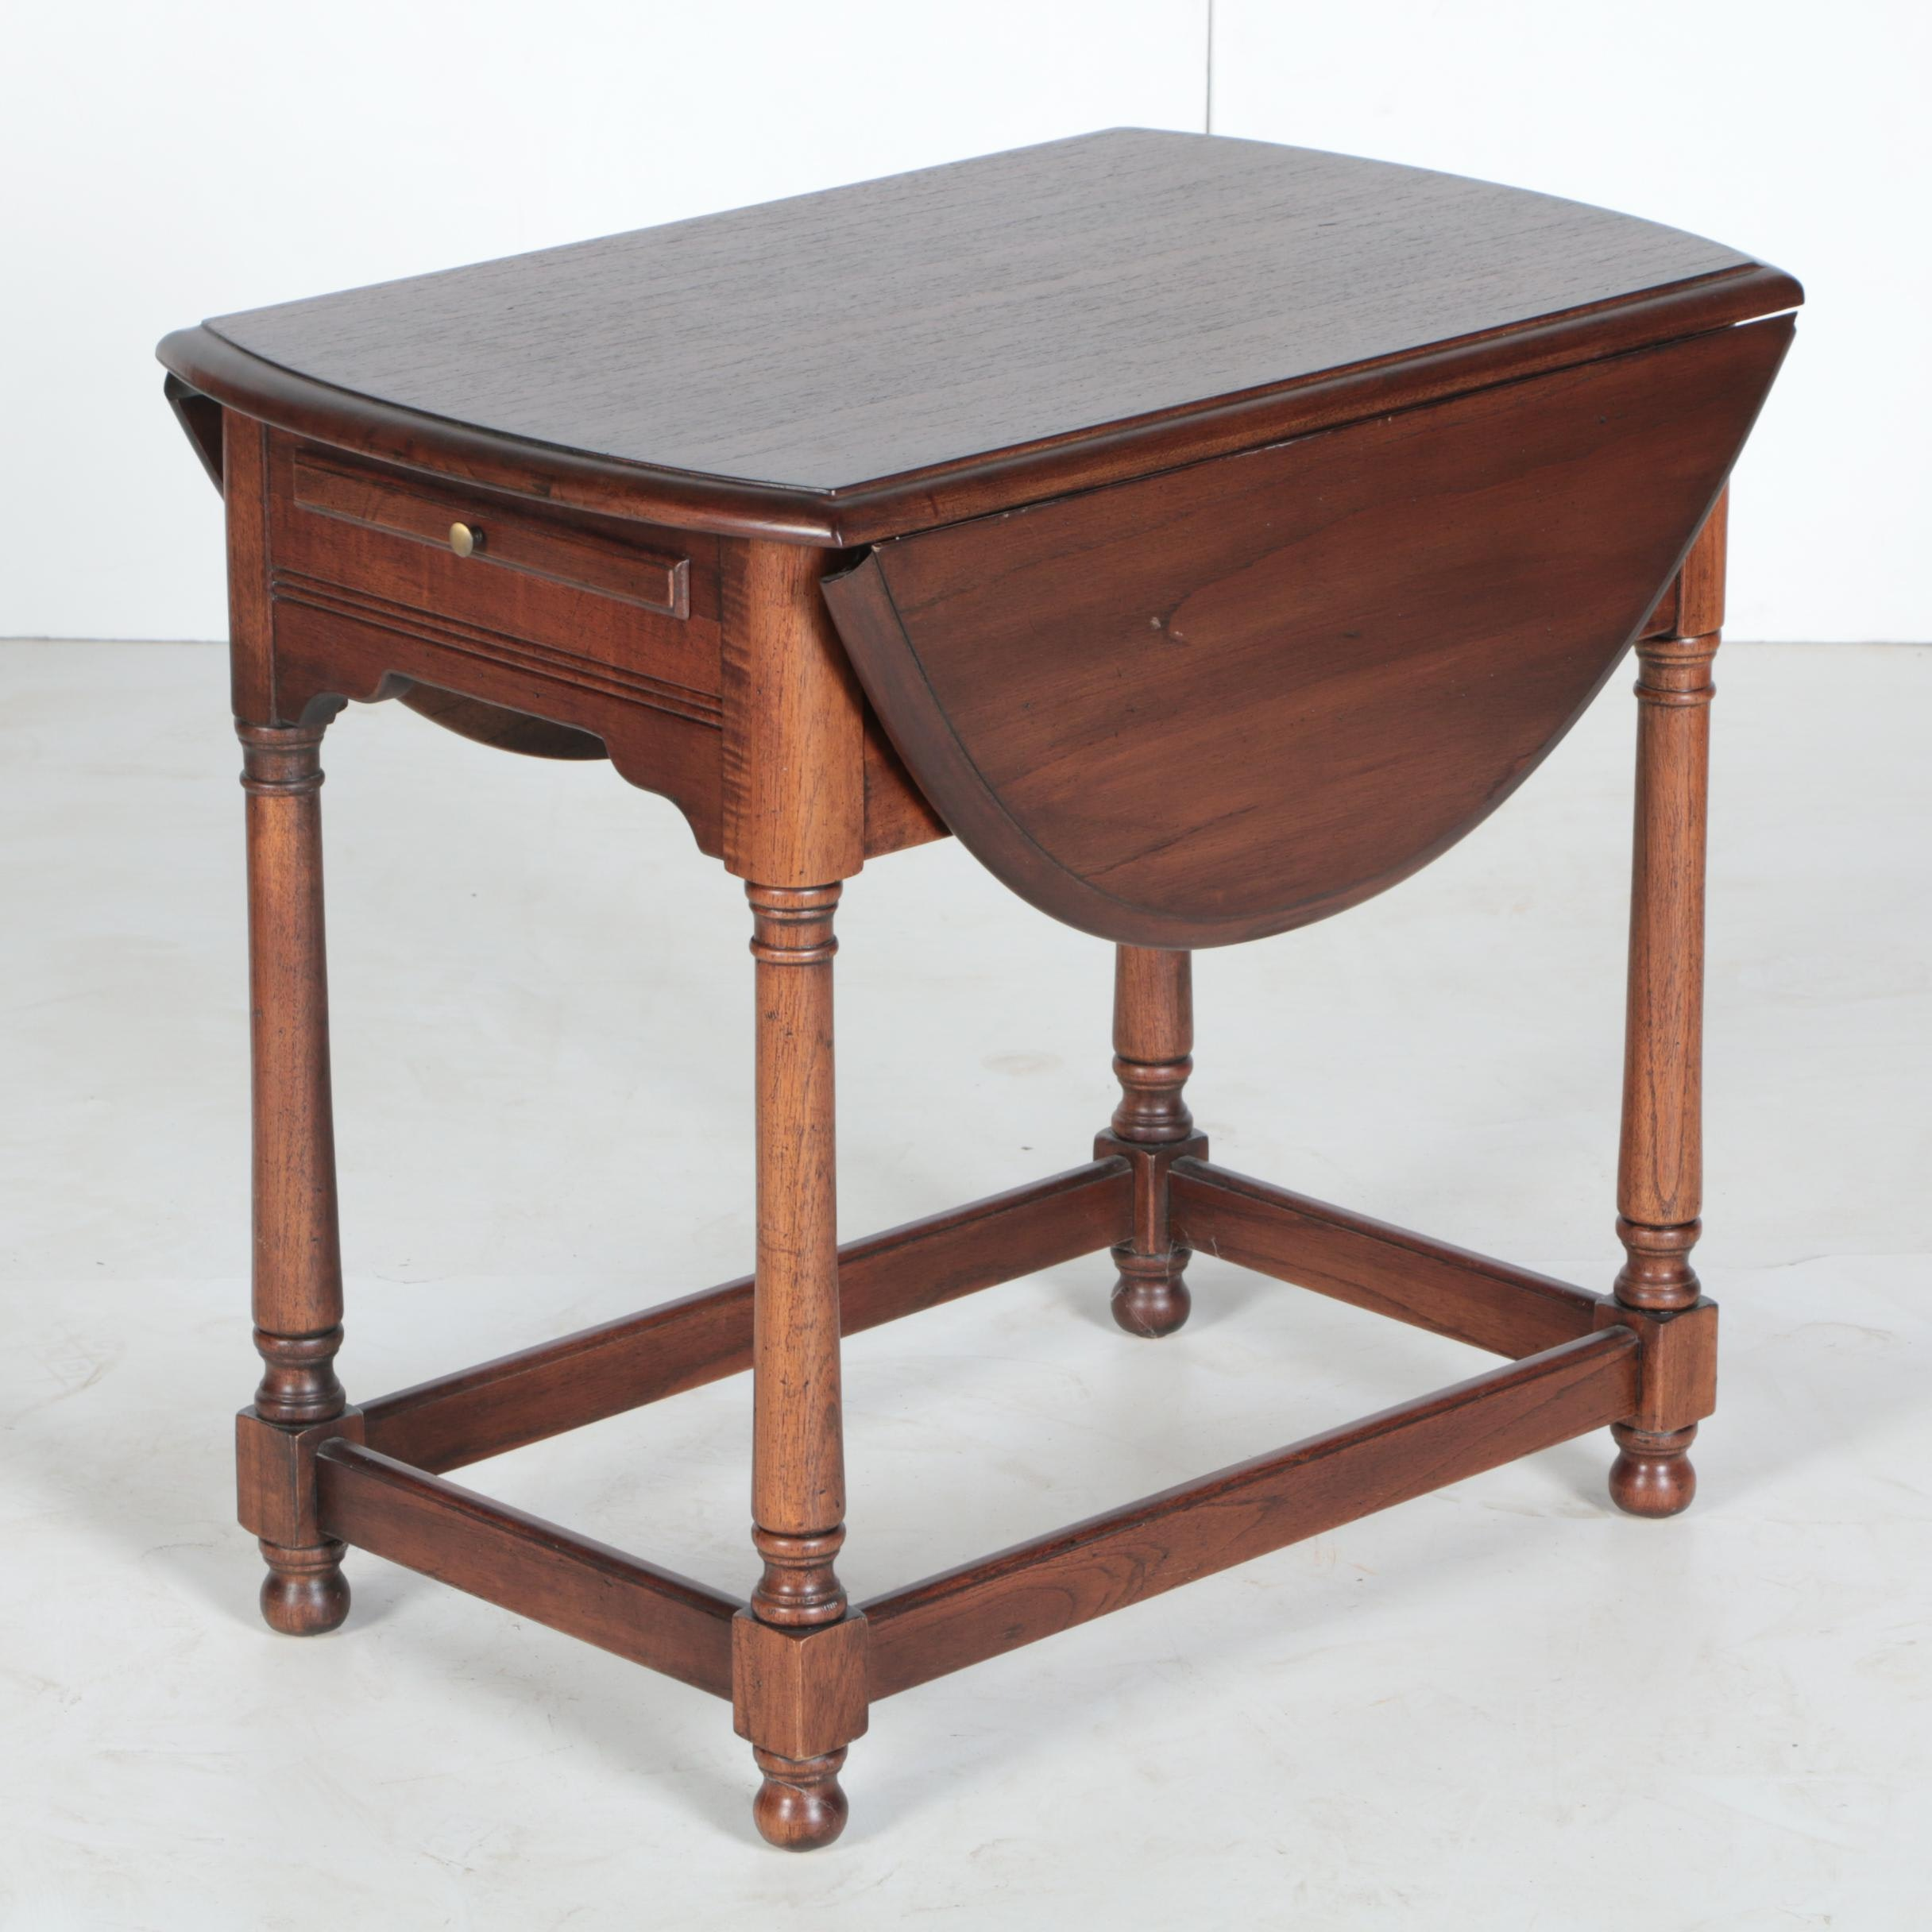 Vintage Walnut Drop-Leaf End Table